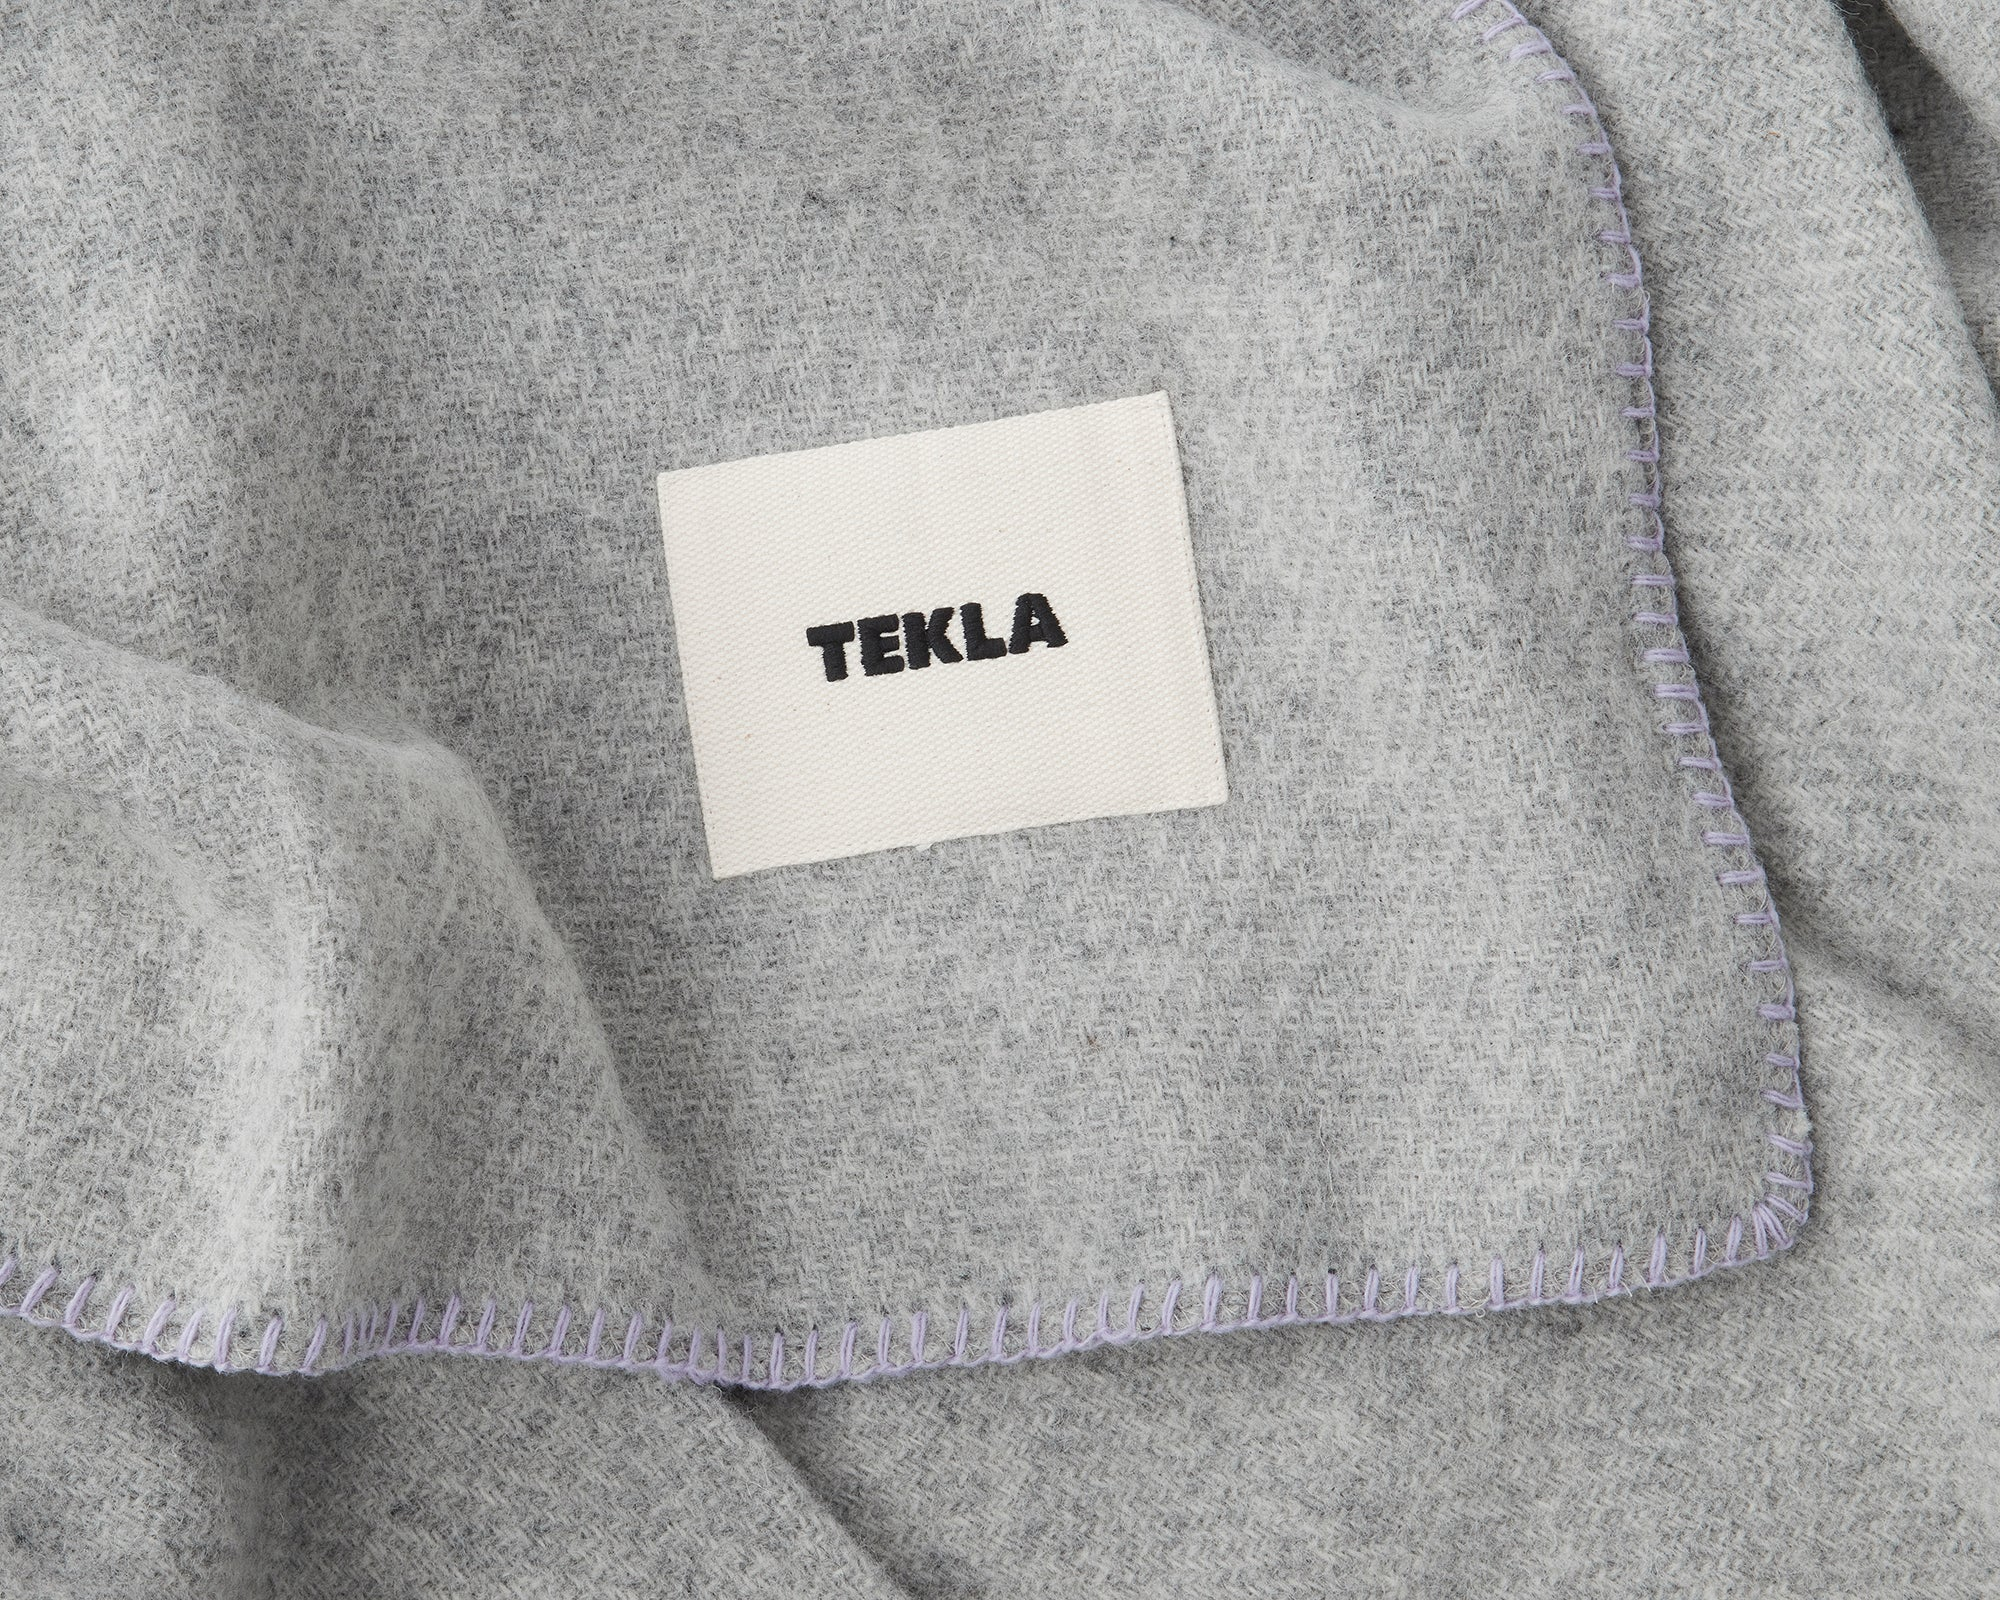 Telka New Wool Blanket - Pebble Grey